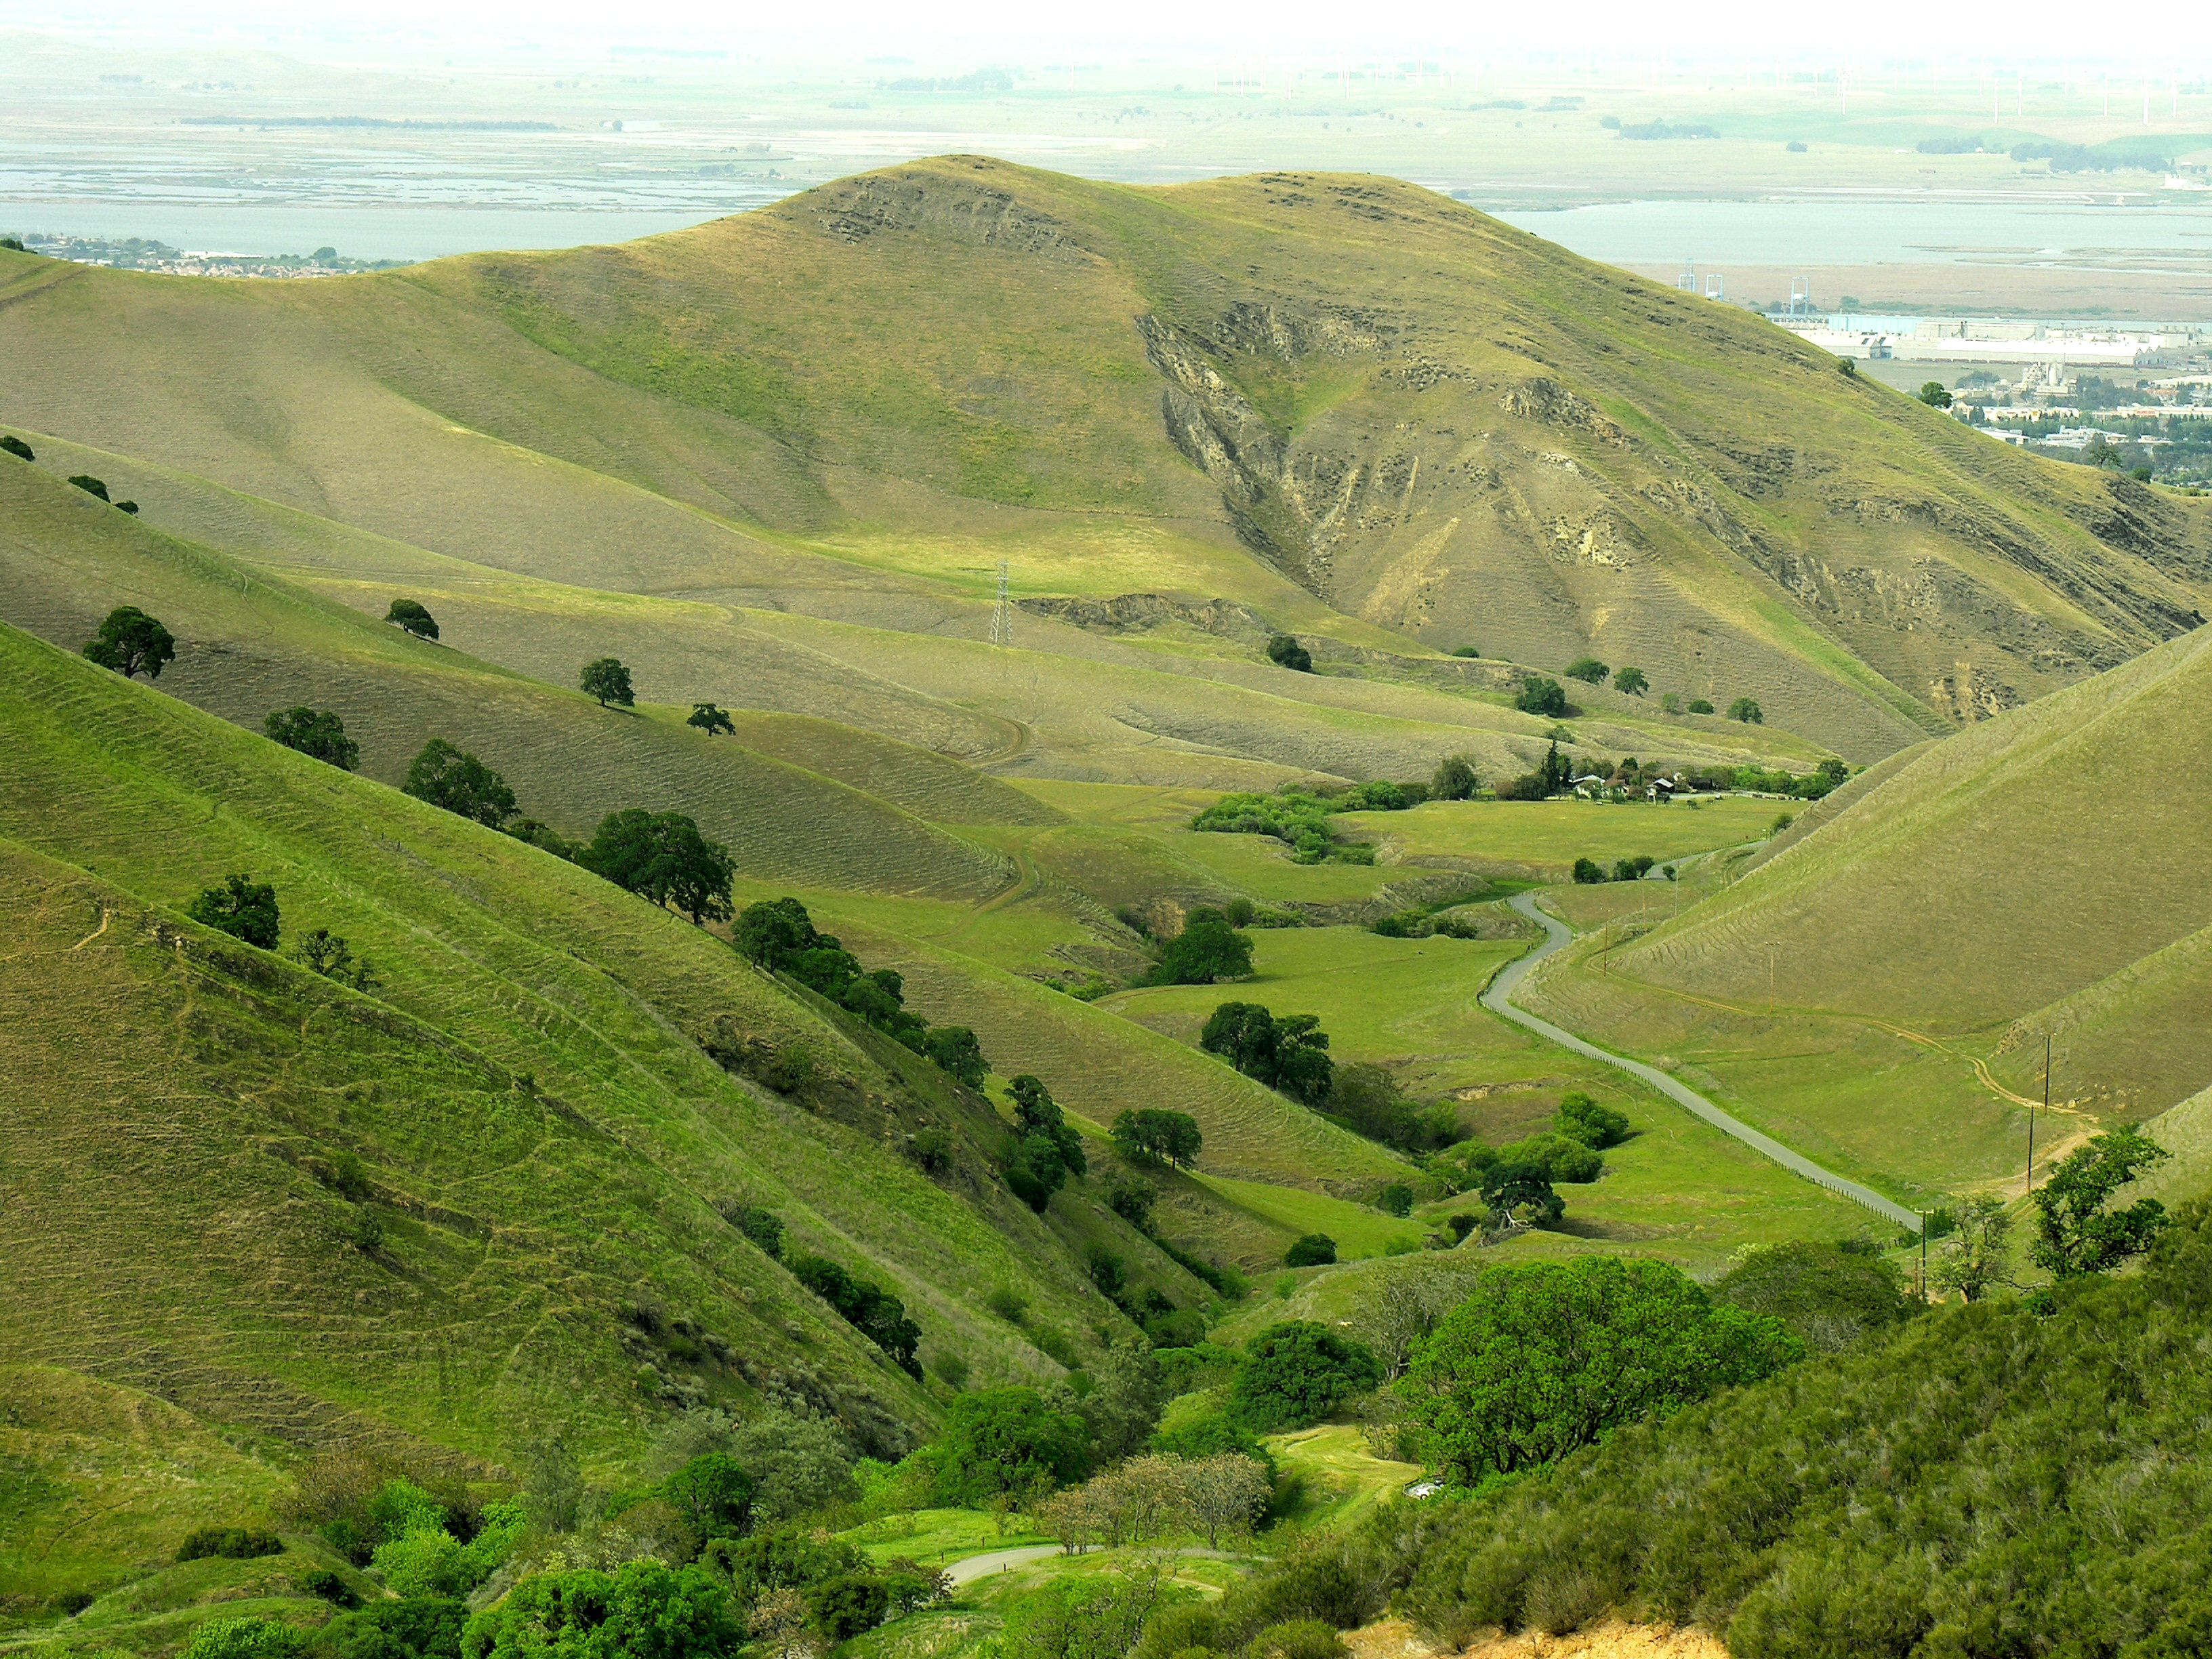 Black Diamond Mines Regional Preserve Antioch California East Bay Park District Myotherbackyard Photo Deane Little